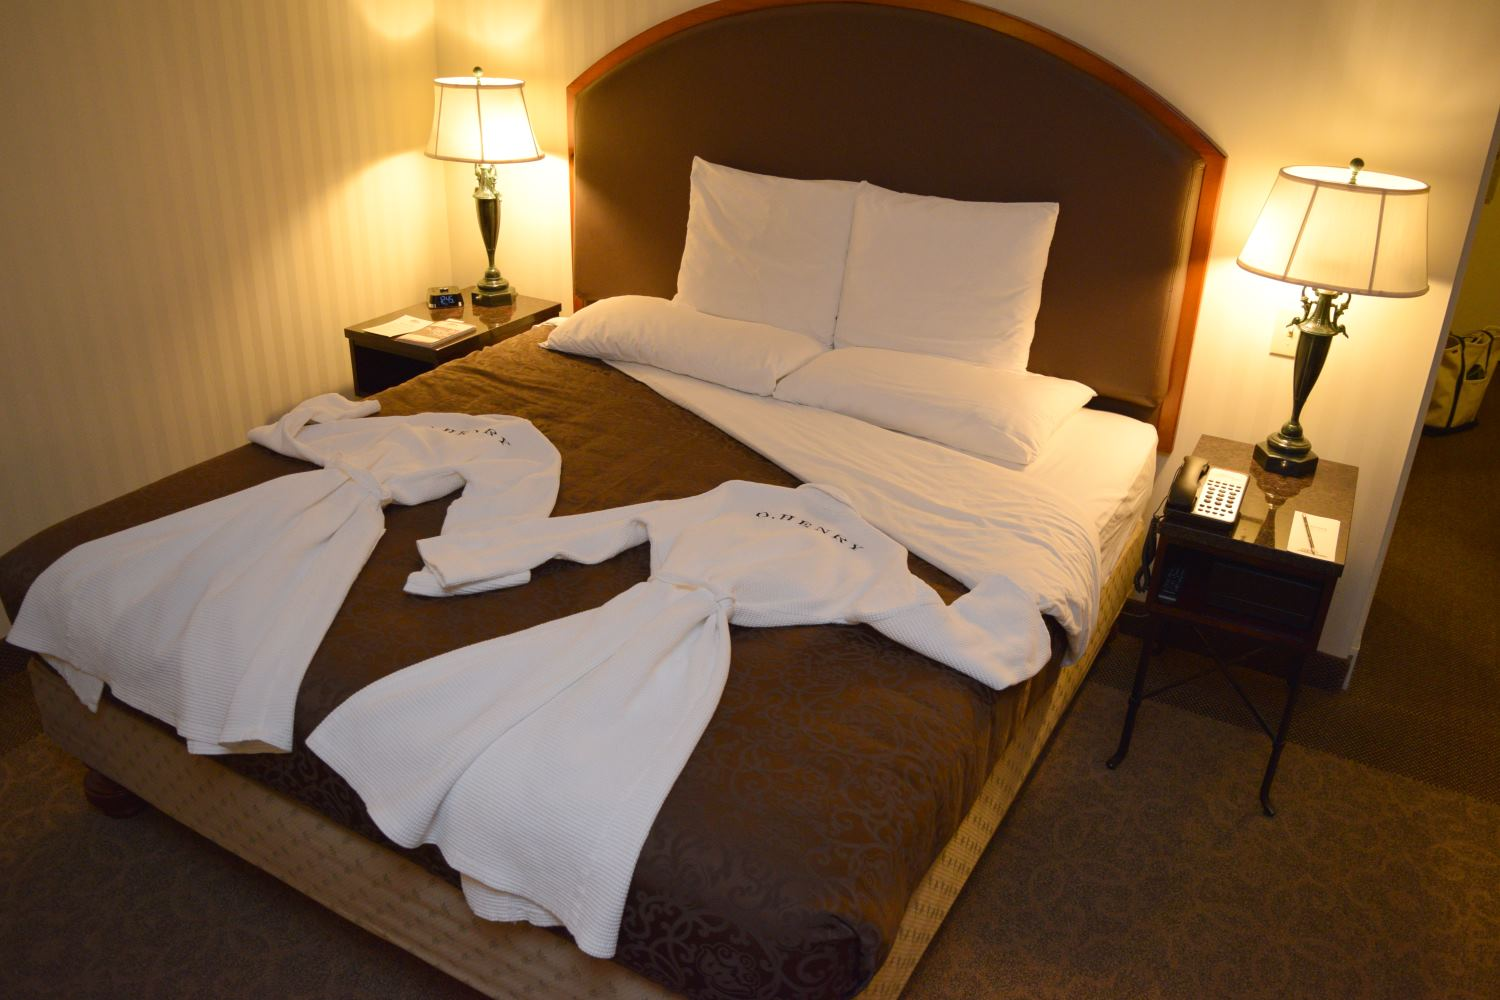 Turndown Service at O.Henry Hotel